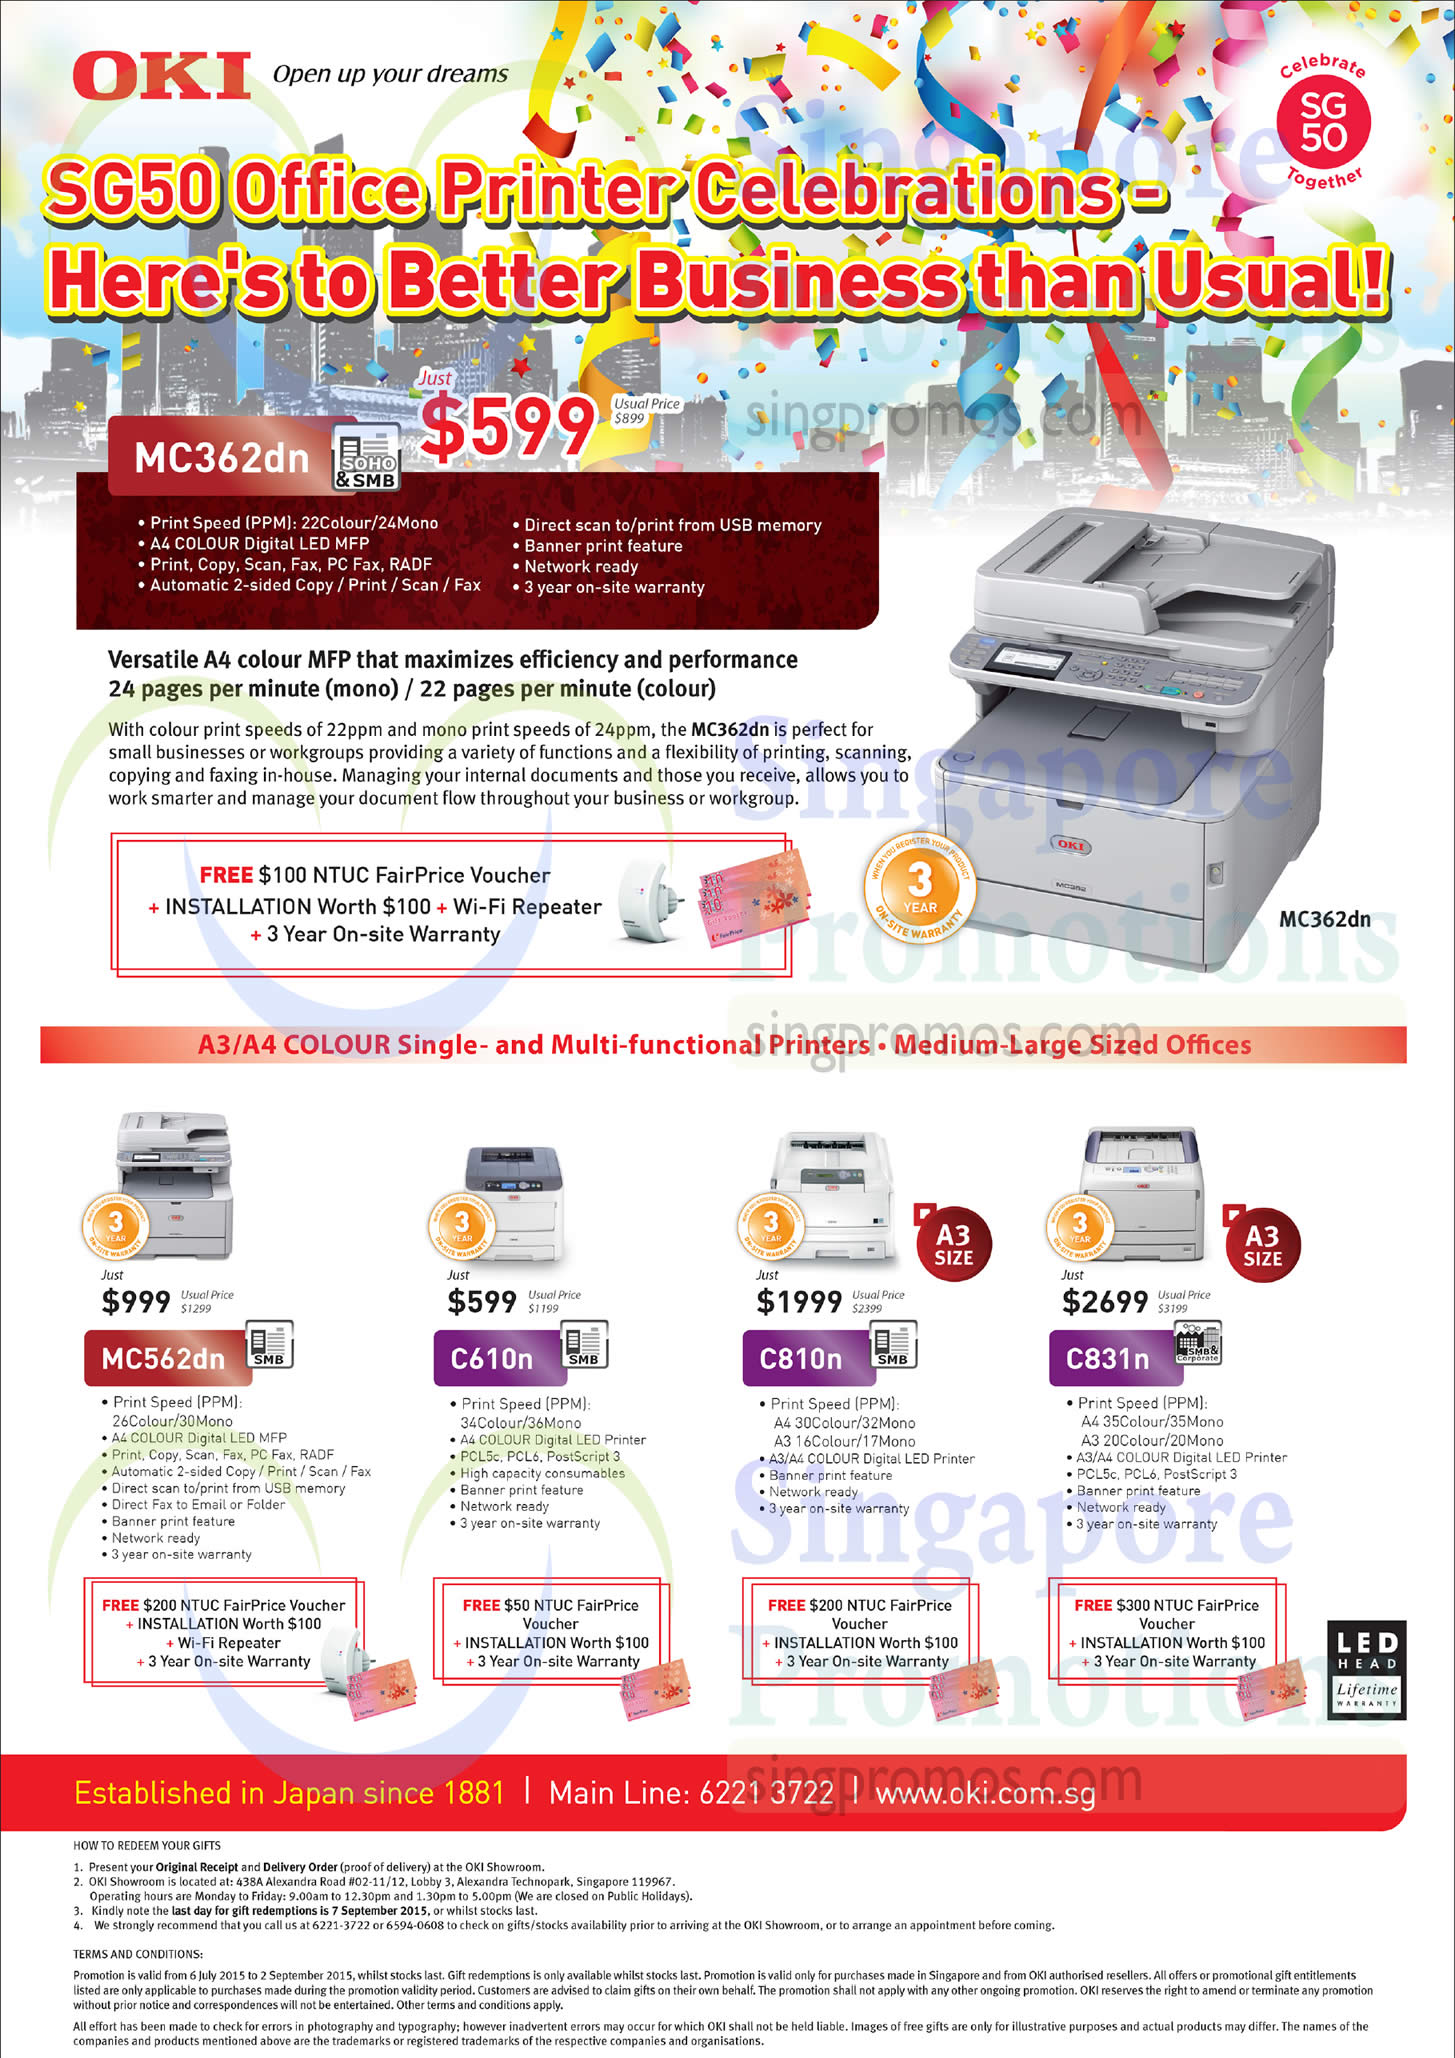 Printers A3, A4 Colour Single, Multi-Functional